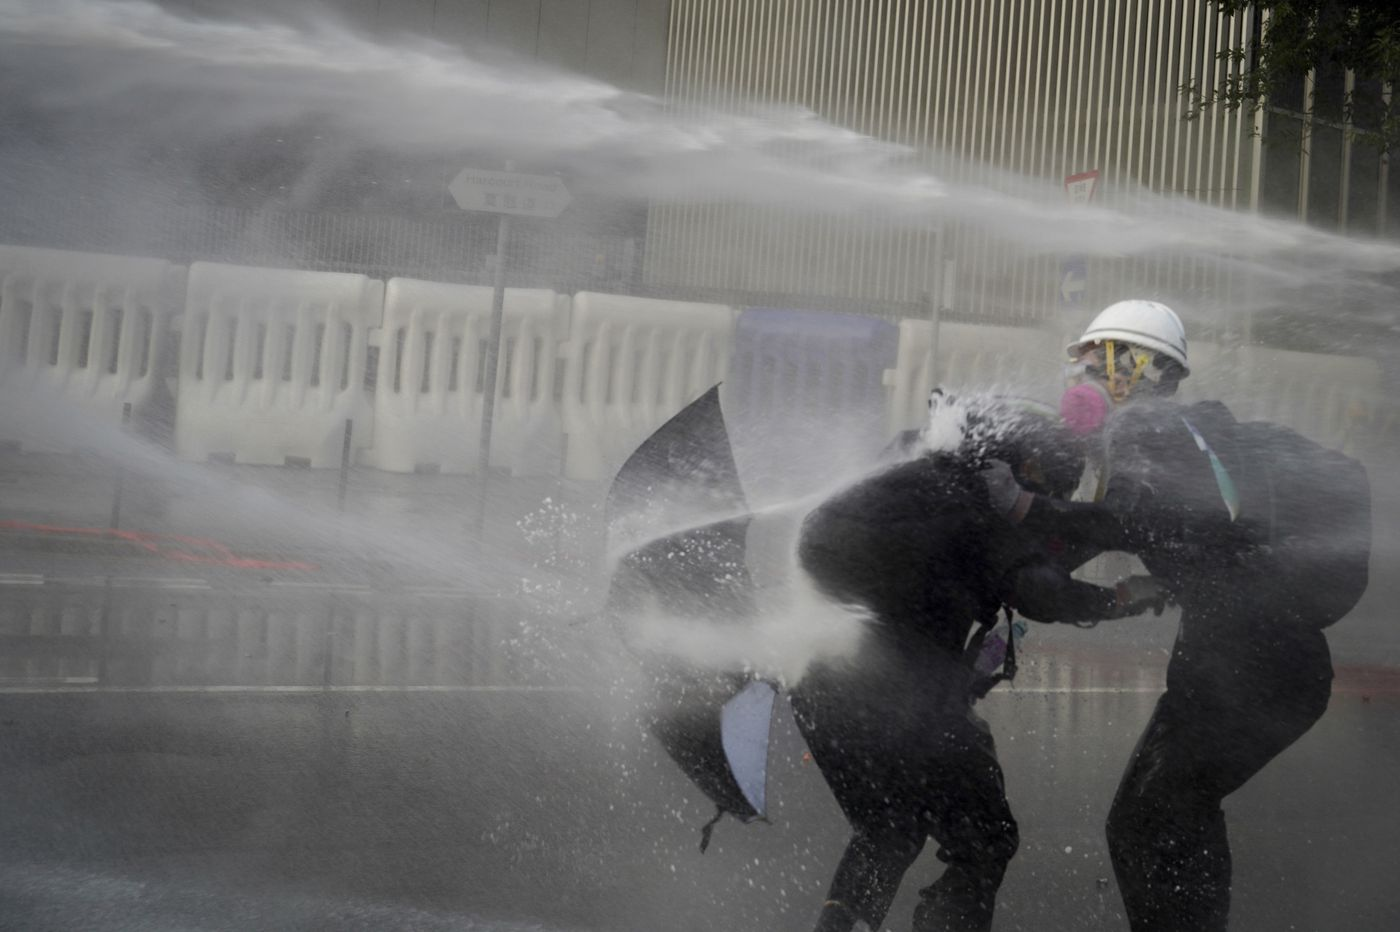 Hong Kong police disperse protests with tear gas and water cannon as unrest enters its 15th week